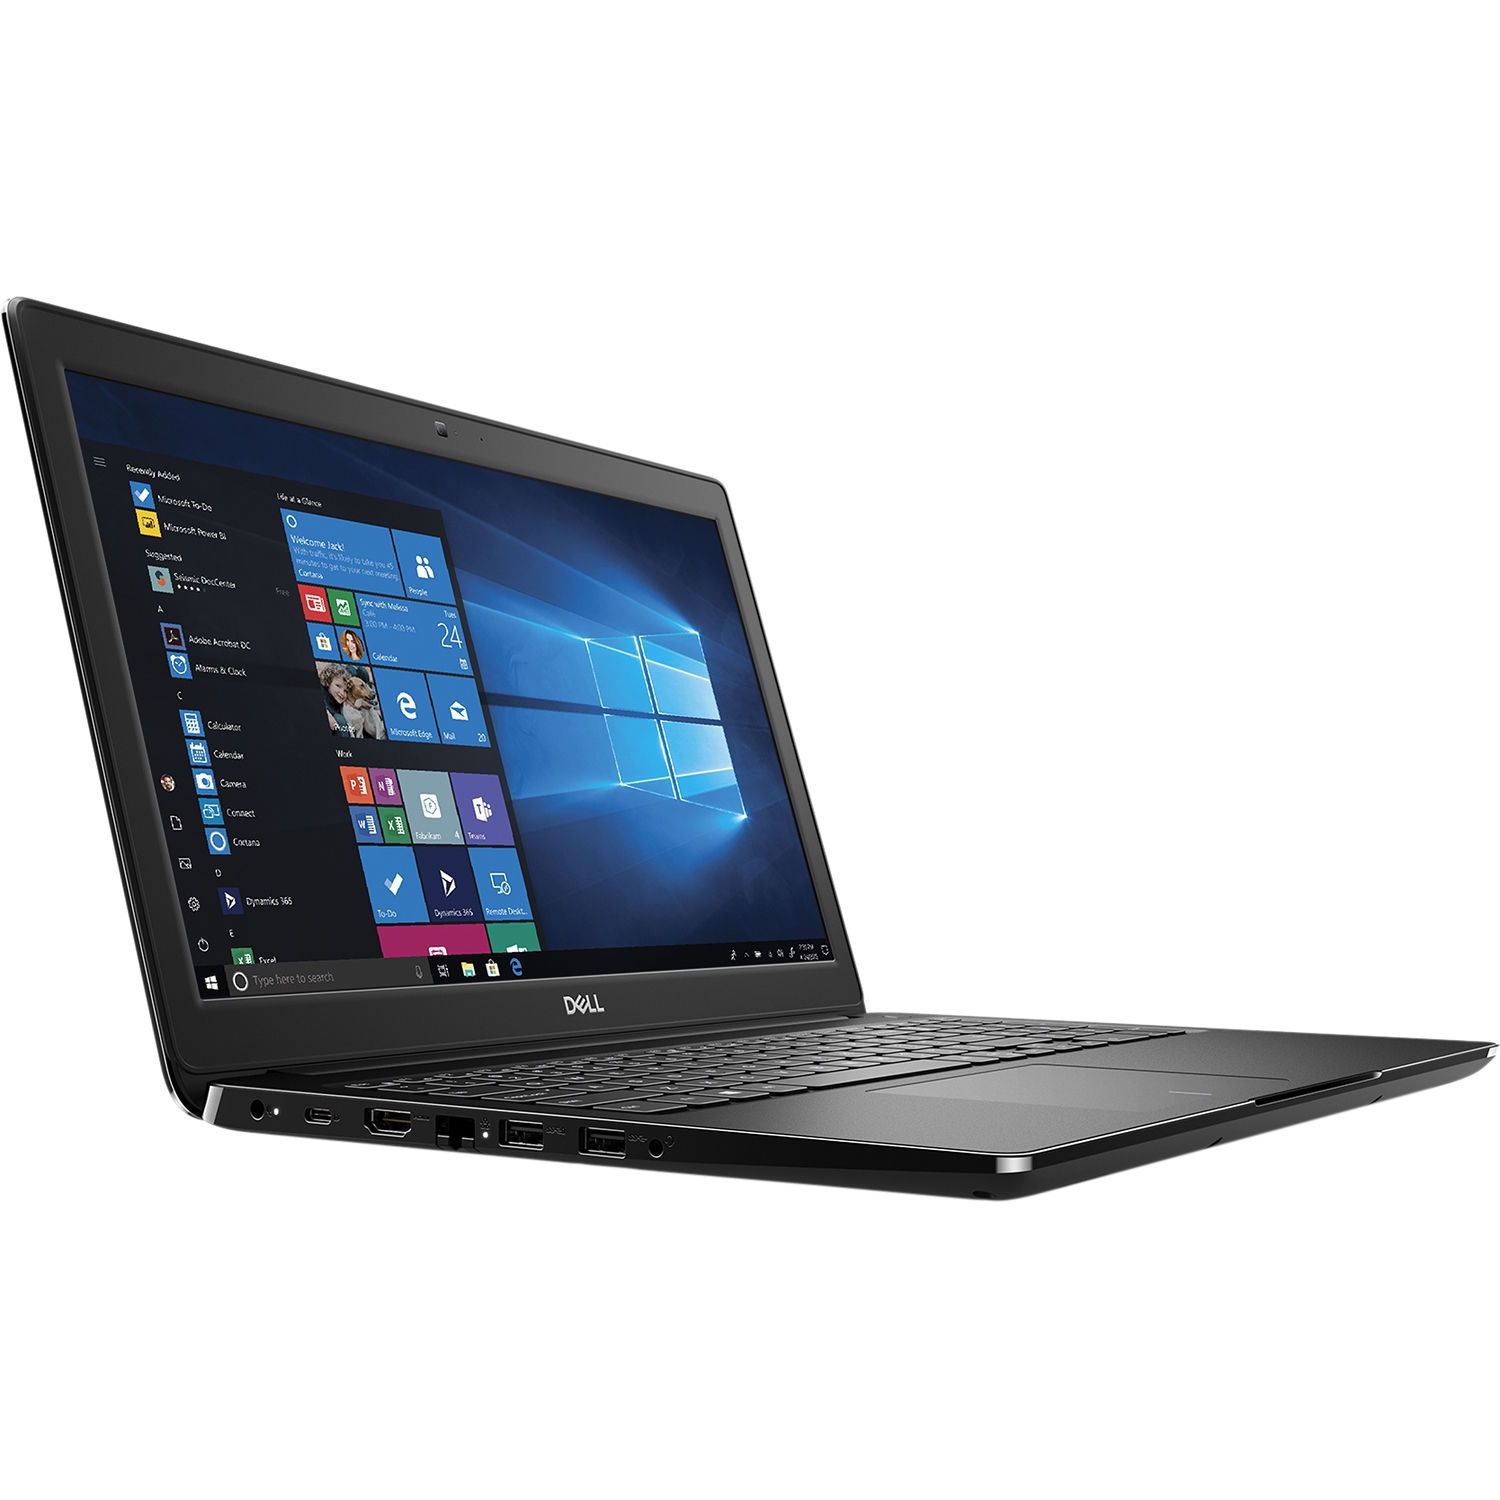 Dell Latitude 5400 Intel Core i5-8265U (1.6GHz 4MB) Integrated UHD Graphics 620 14 Non-Touch Wide View Anti-Glare FHD with Camera (1920X1080) 8GB (1x8GB) 2666MHz DDR4 memory M.2 PCIe 256GB Solid State Drive Qwerty Backlit Keyboard 4-cell 65W/Hr Battery 65W AC Adapter WLAN Smart Card Reader Windows 10 Professional DW5820e WWAN Card Intel 7360 LTE-A 3Yr Basic Onsite Service